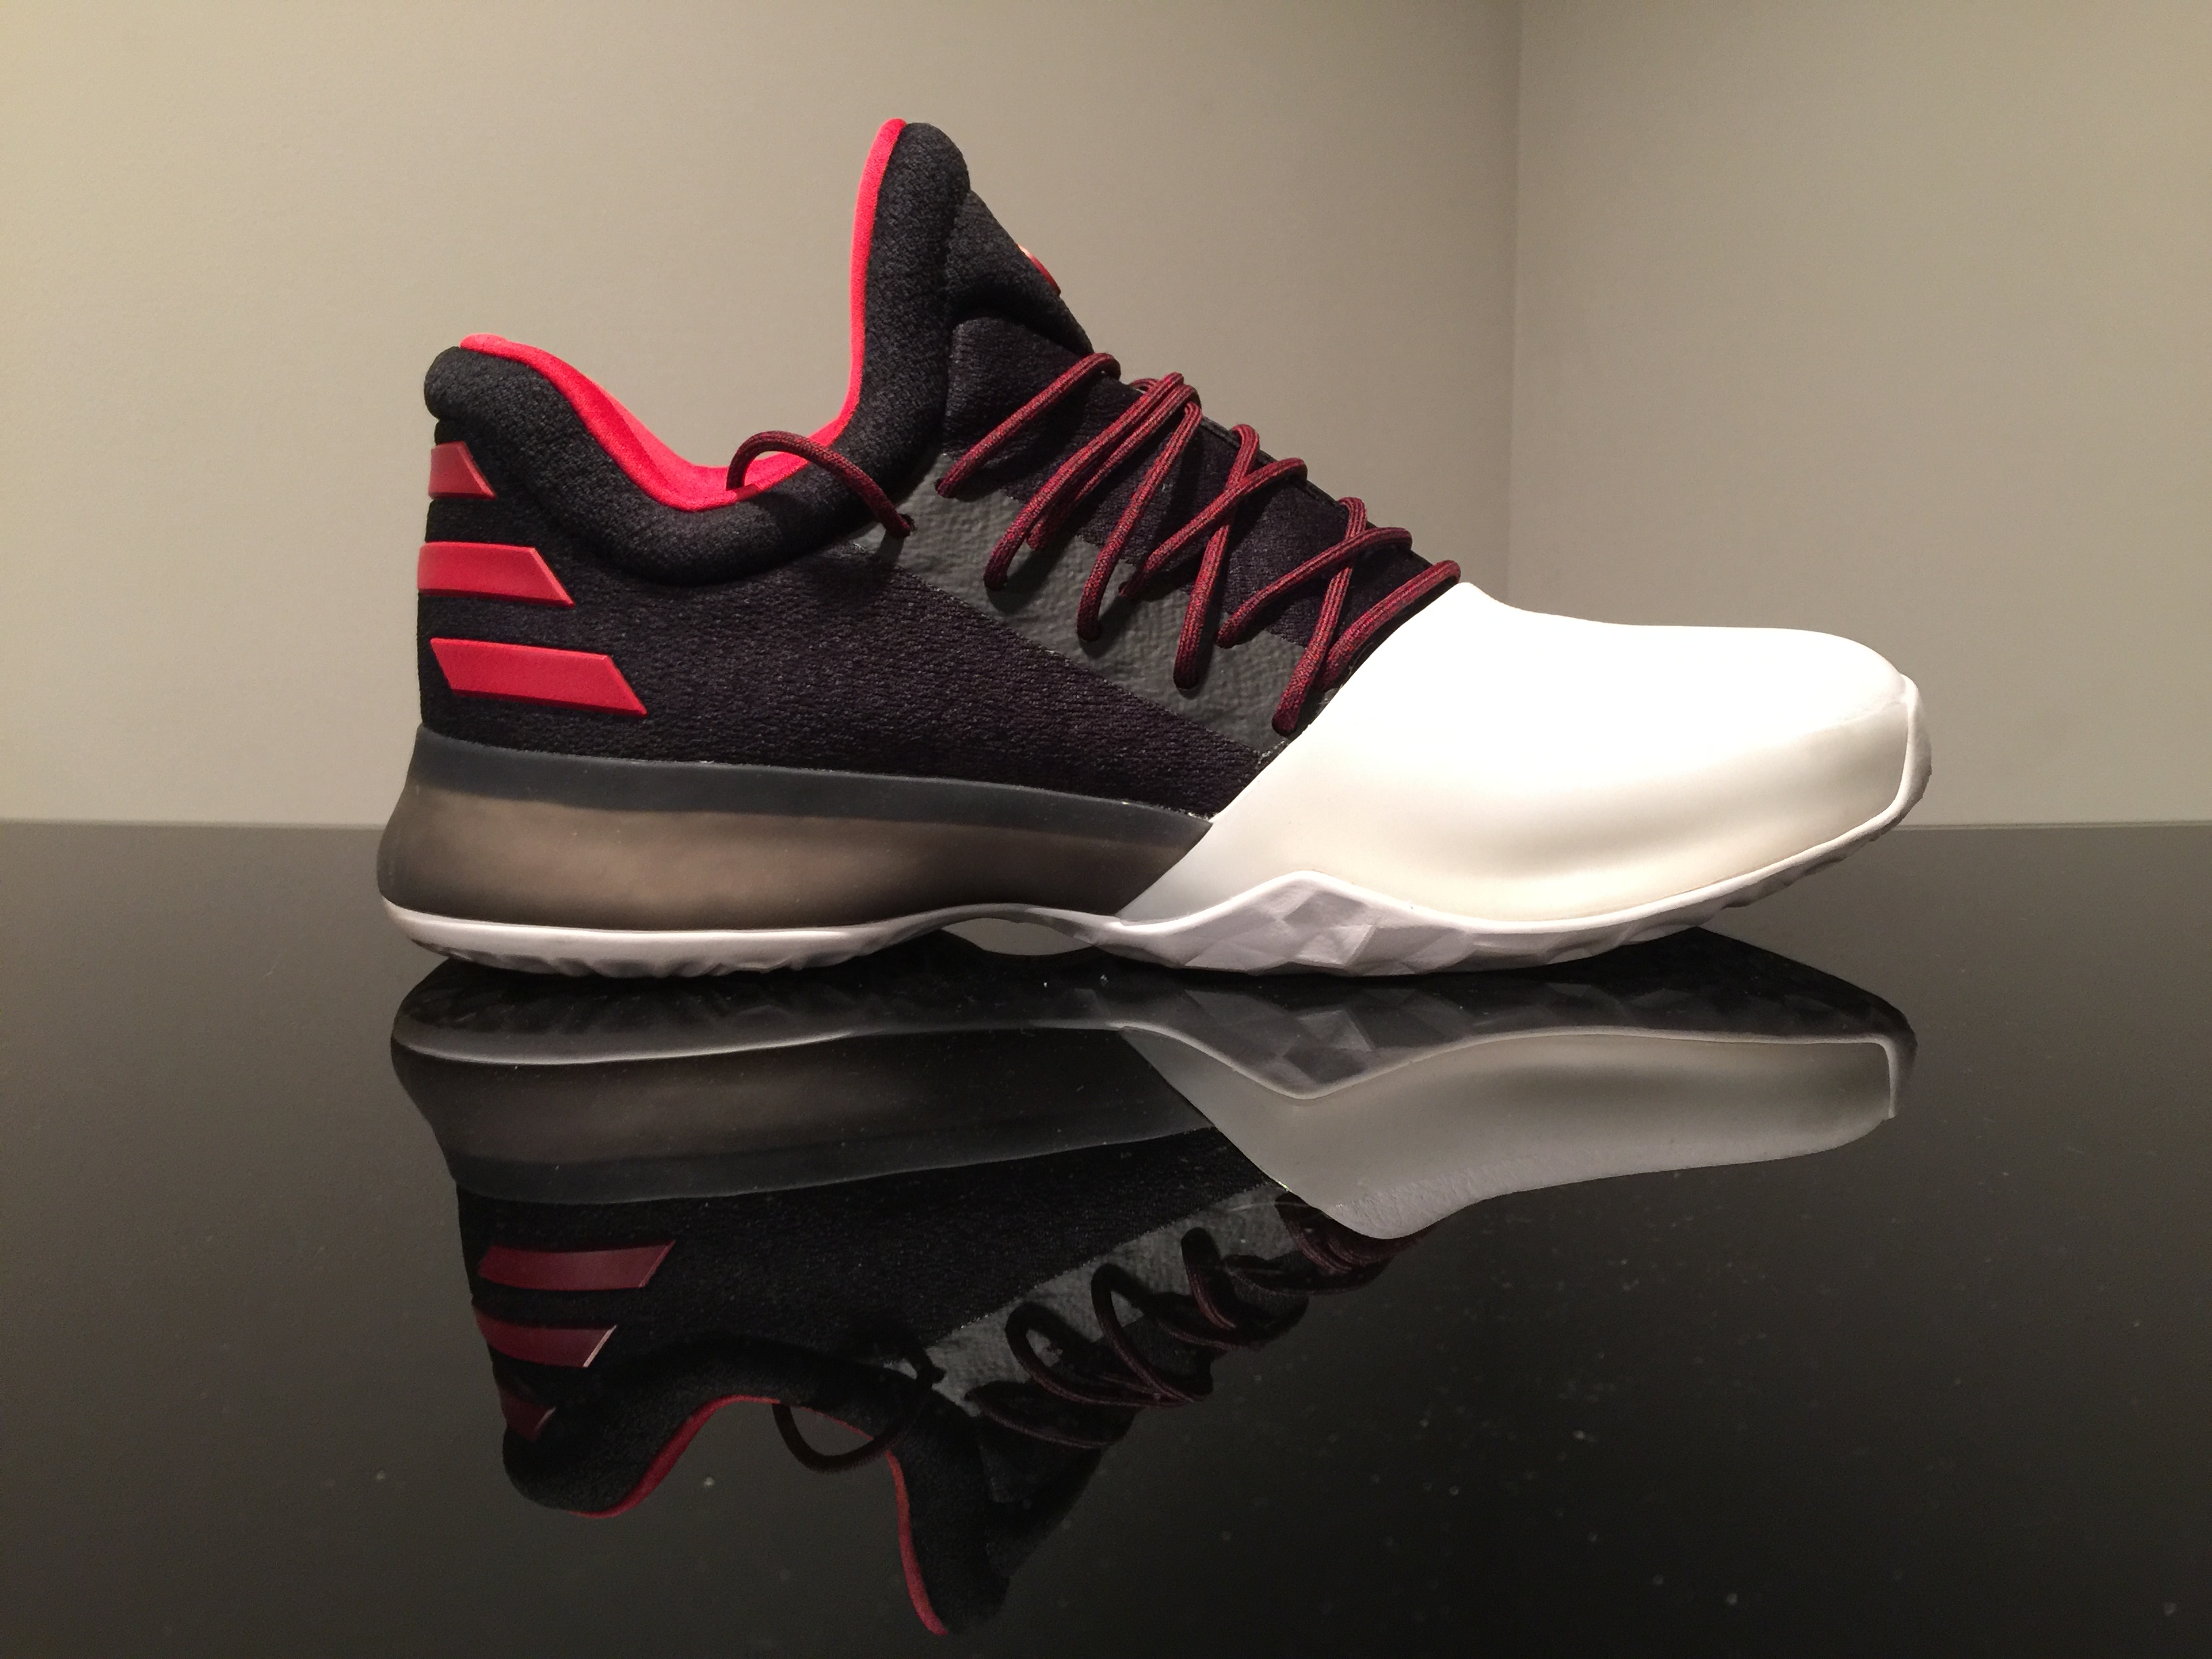 c3d0b2f35c6a adidas Harden Vol. 1 Performance Review